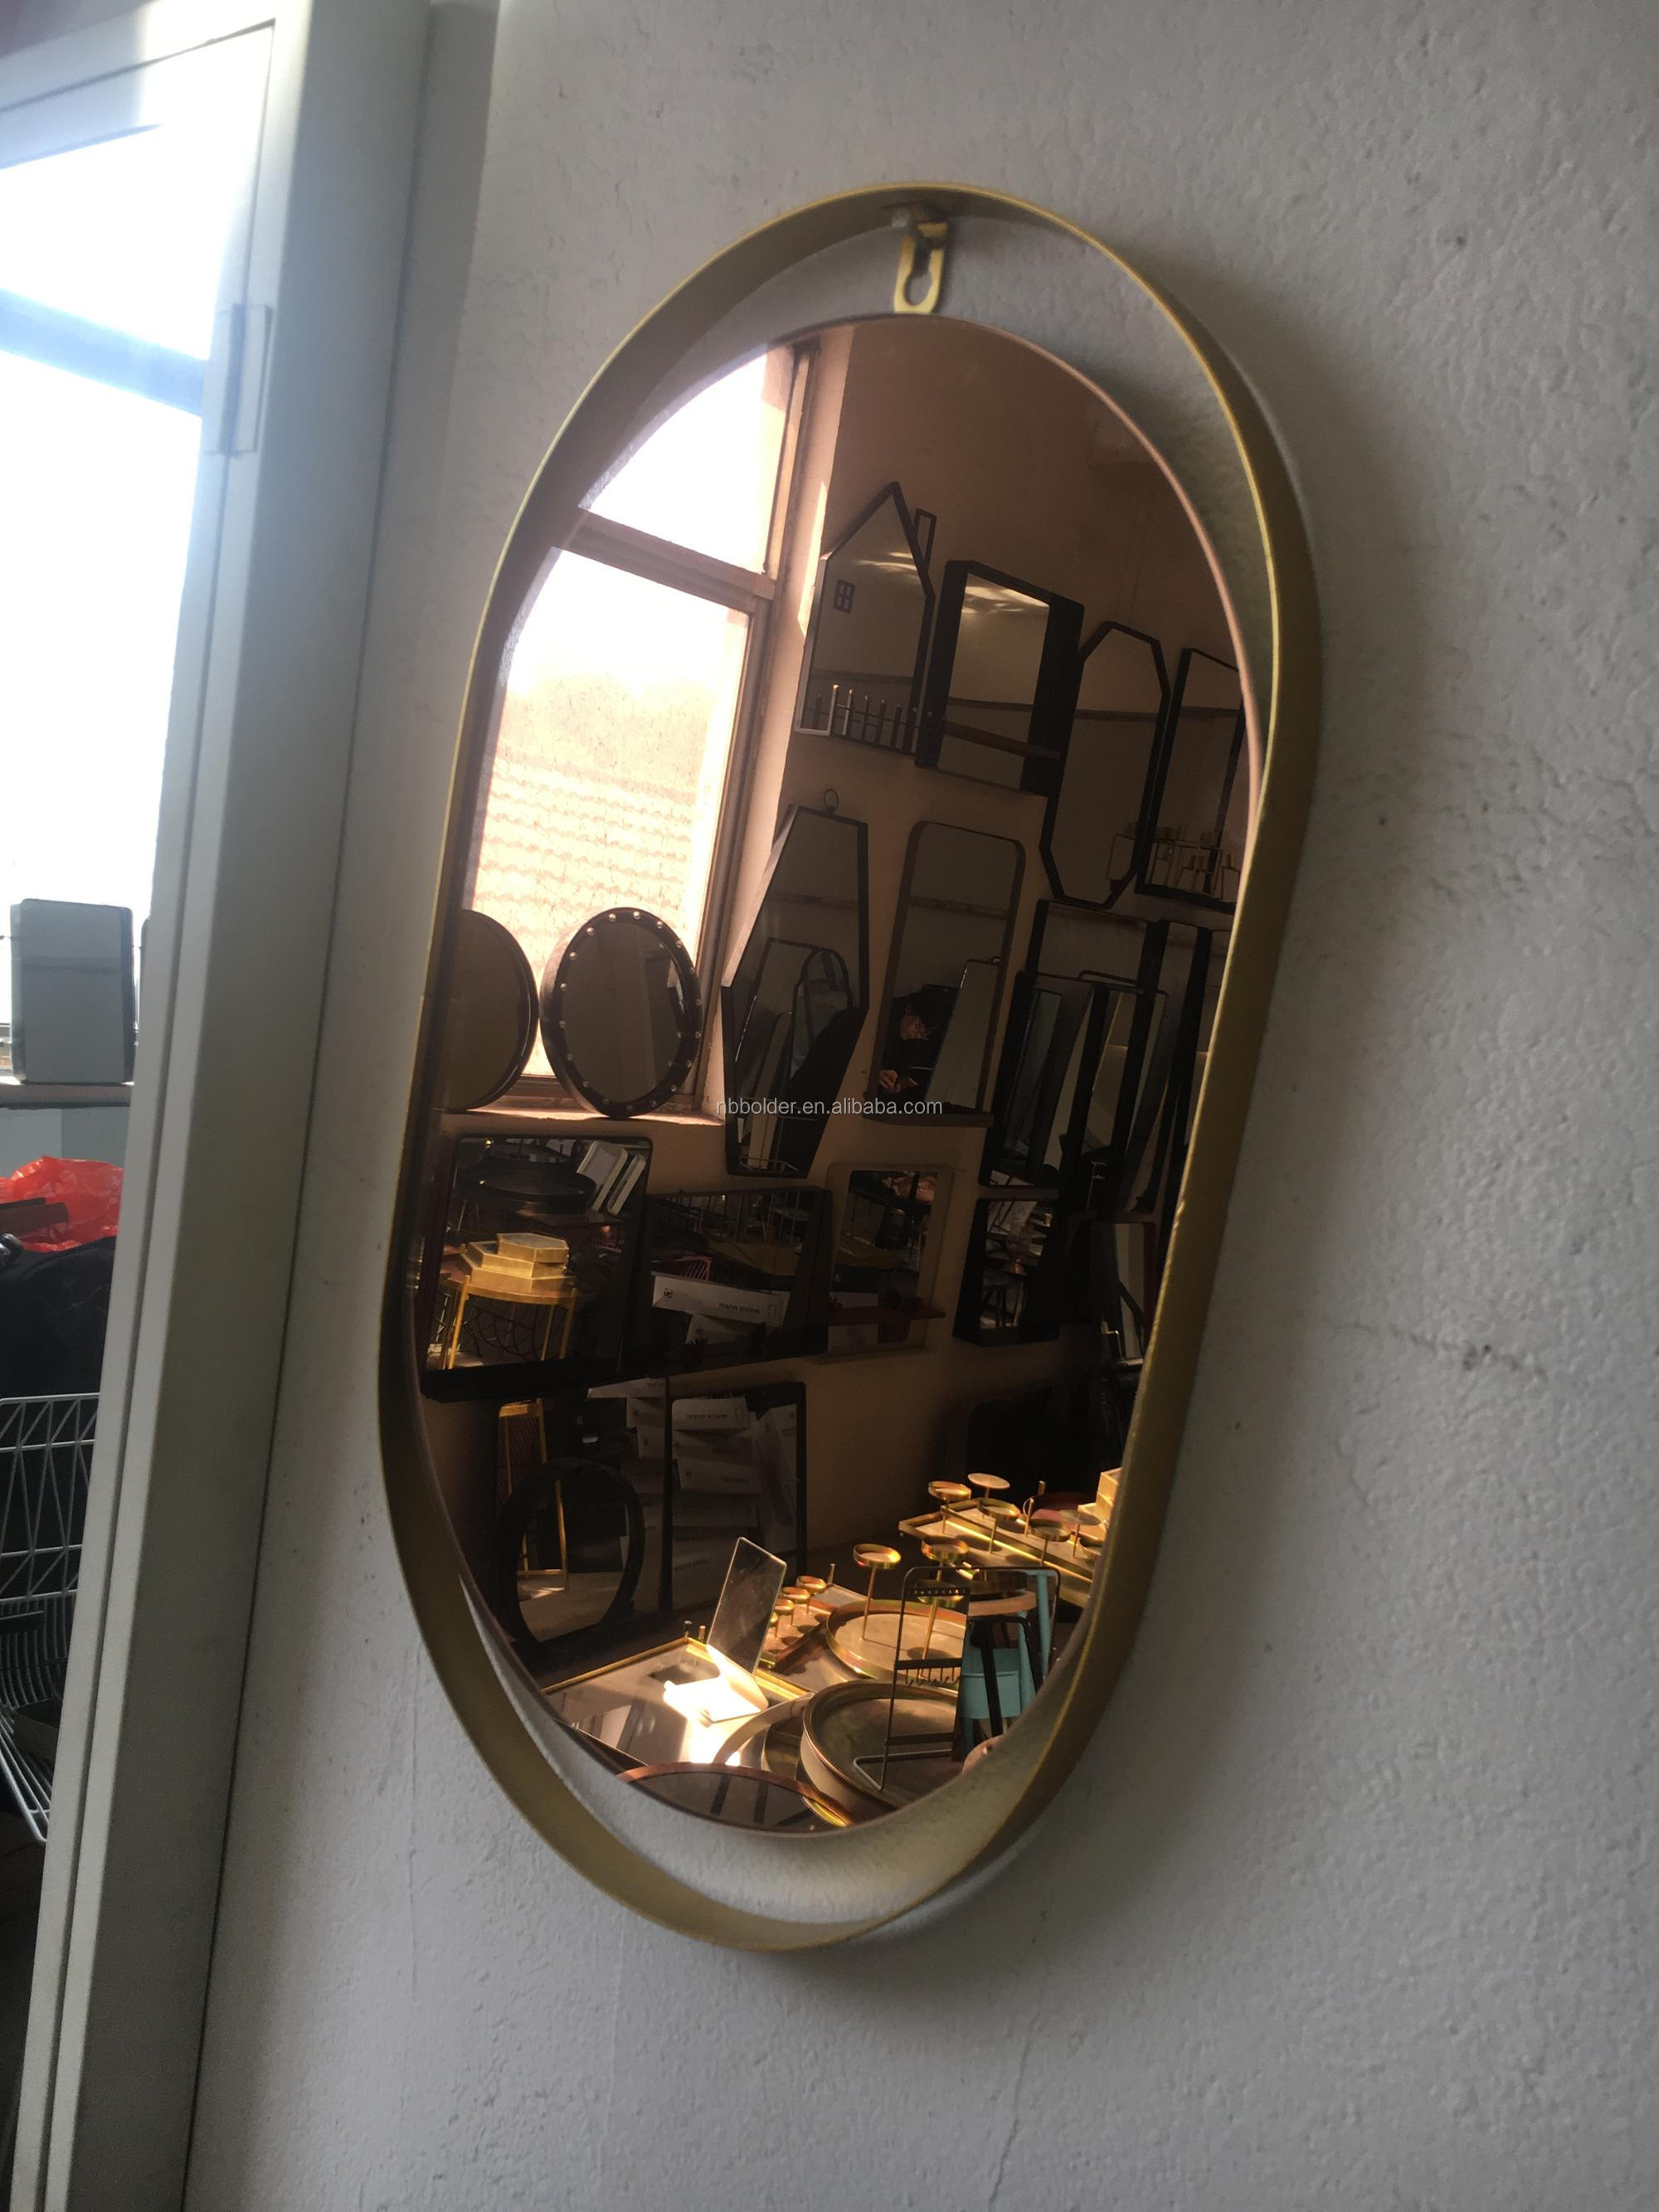 Decorative gold metal frame oval wall mirror with brown glass mirror